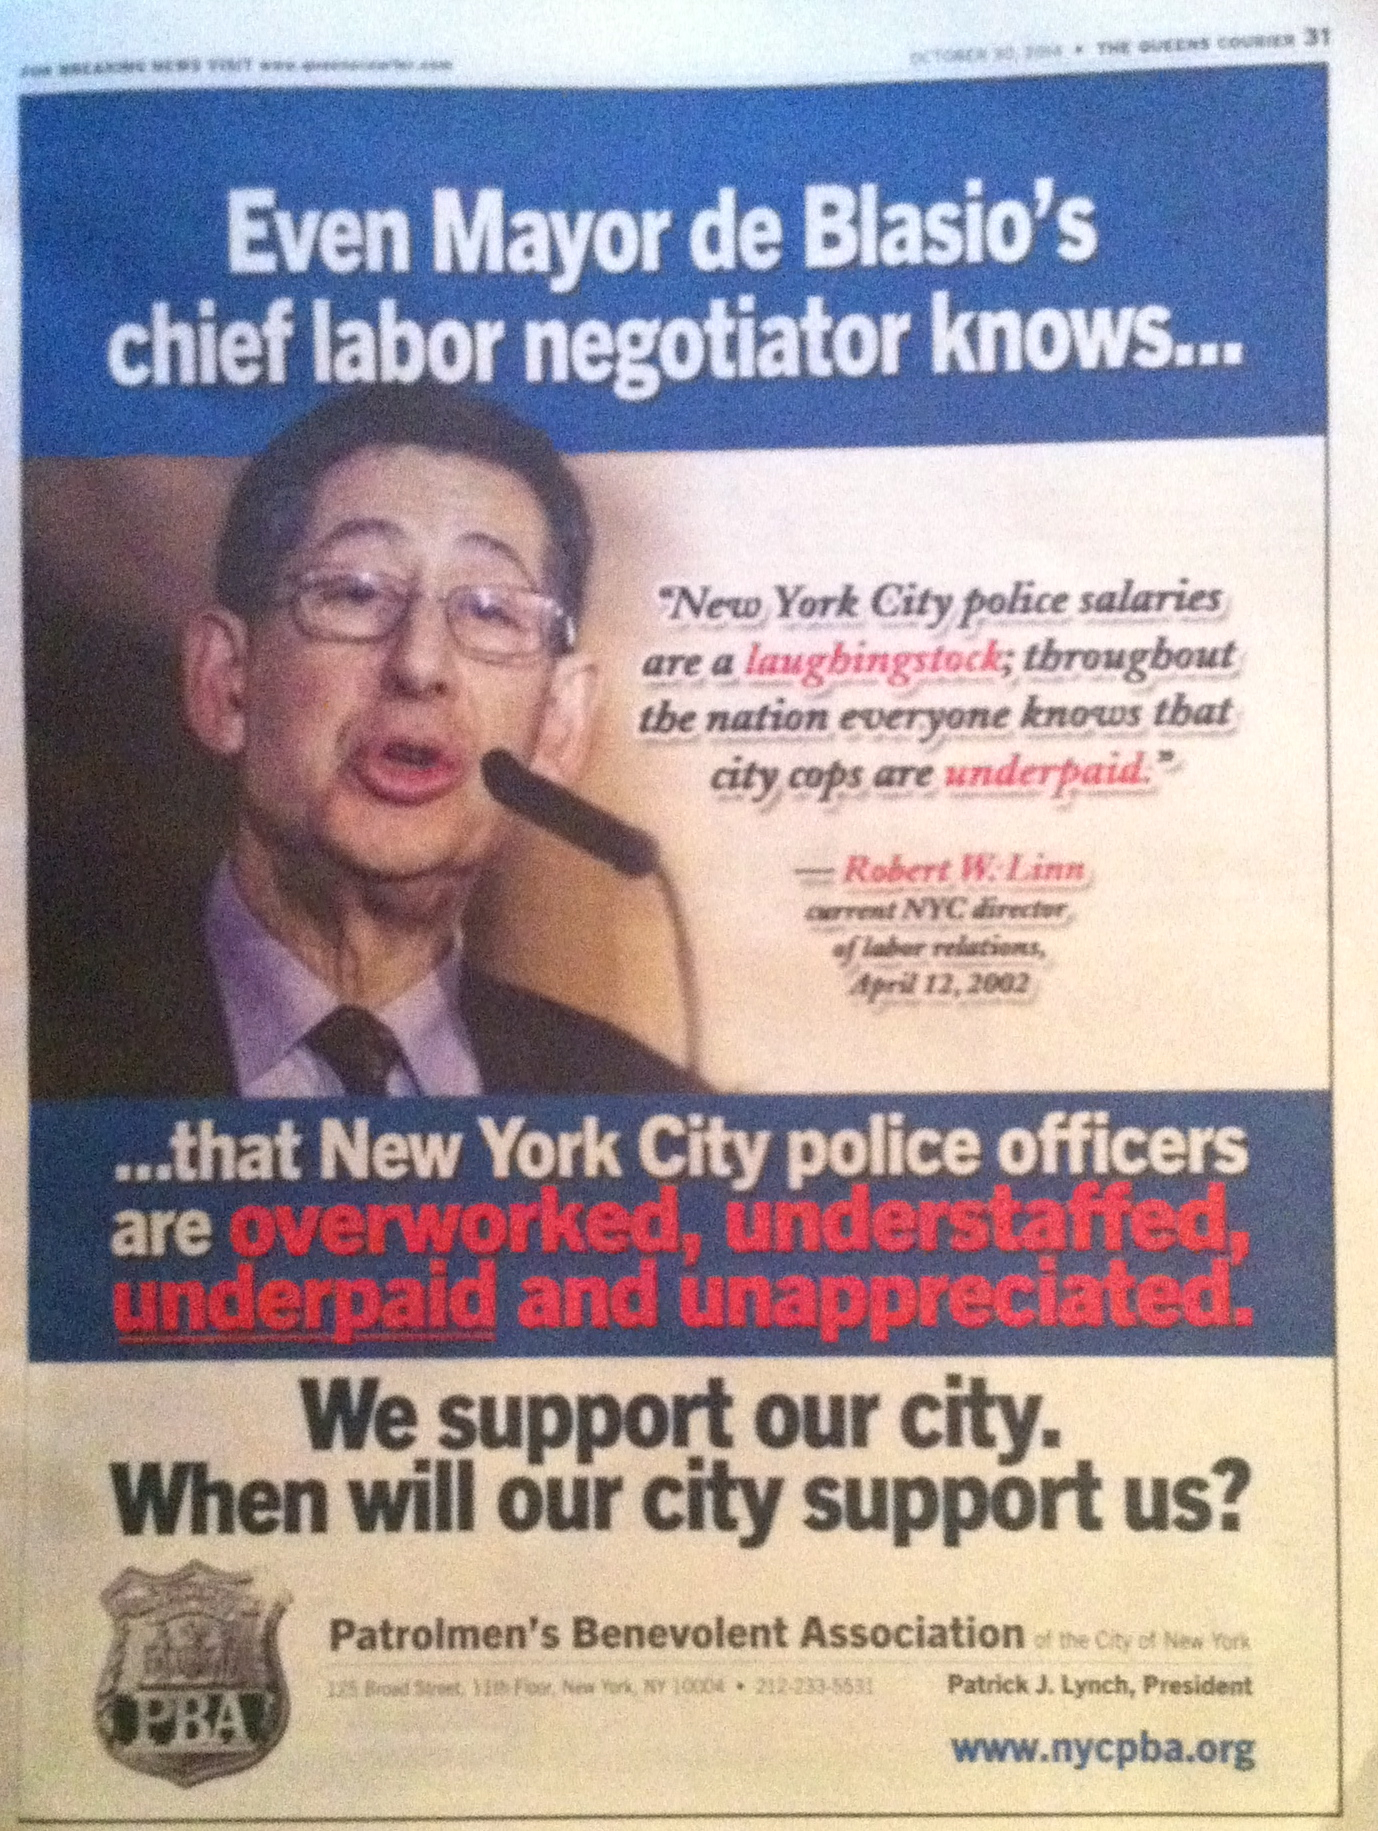 A full-page advertisement in the Oct. 30, 2014 edition of  The Queens Courier .  The  Patrolemen's Benevolent Association  is waging a public relations war with the de Blasio administration over a new  union contract .  Source :   The Queens Courier /Photograph by Progress Queens